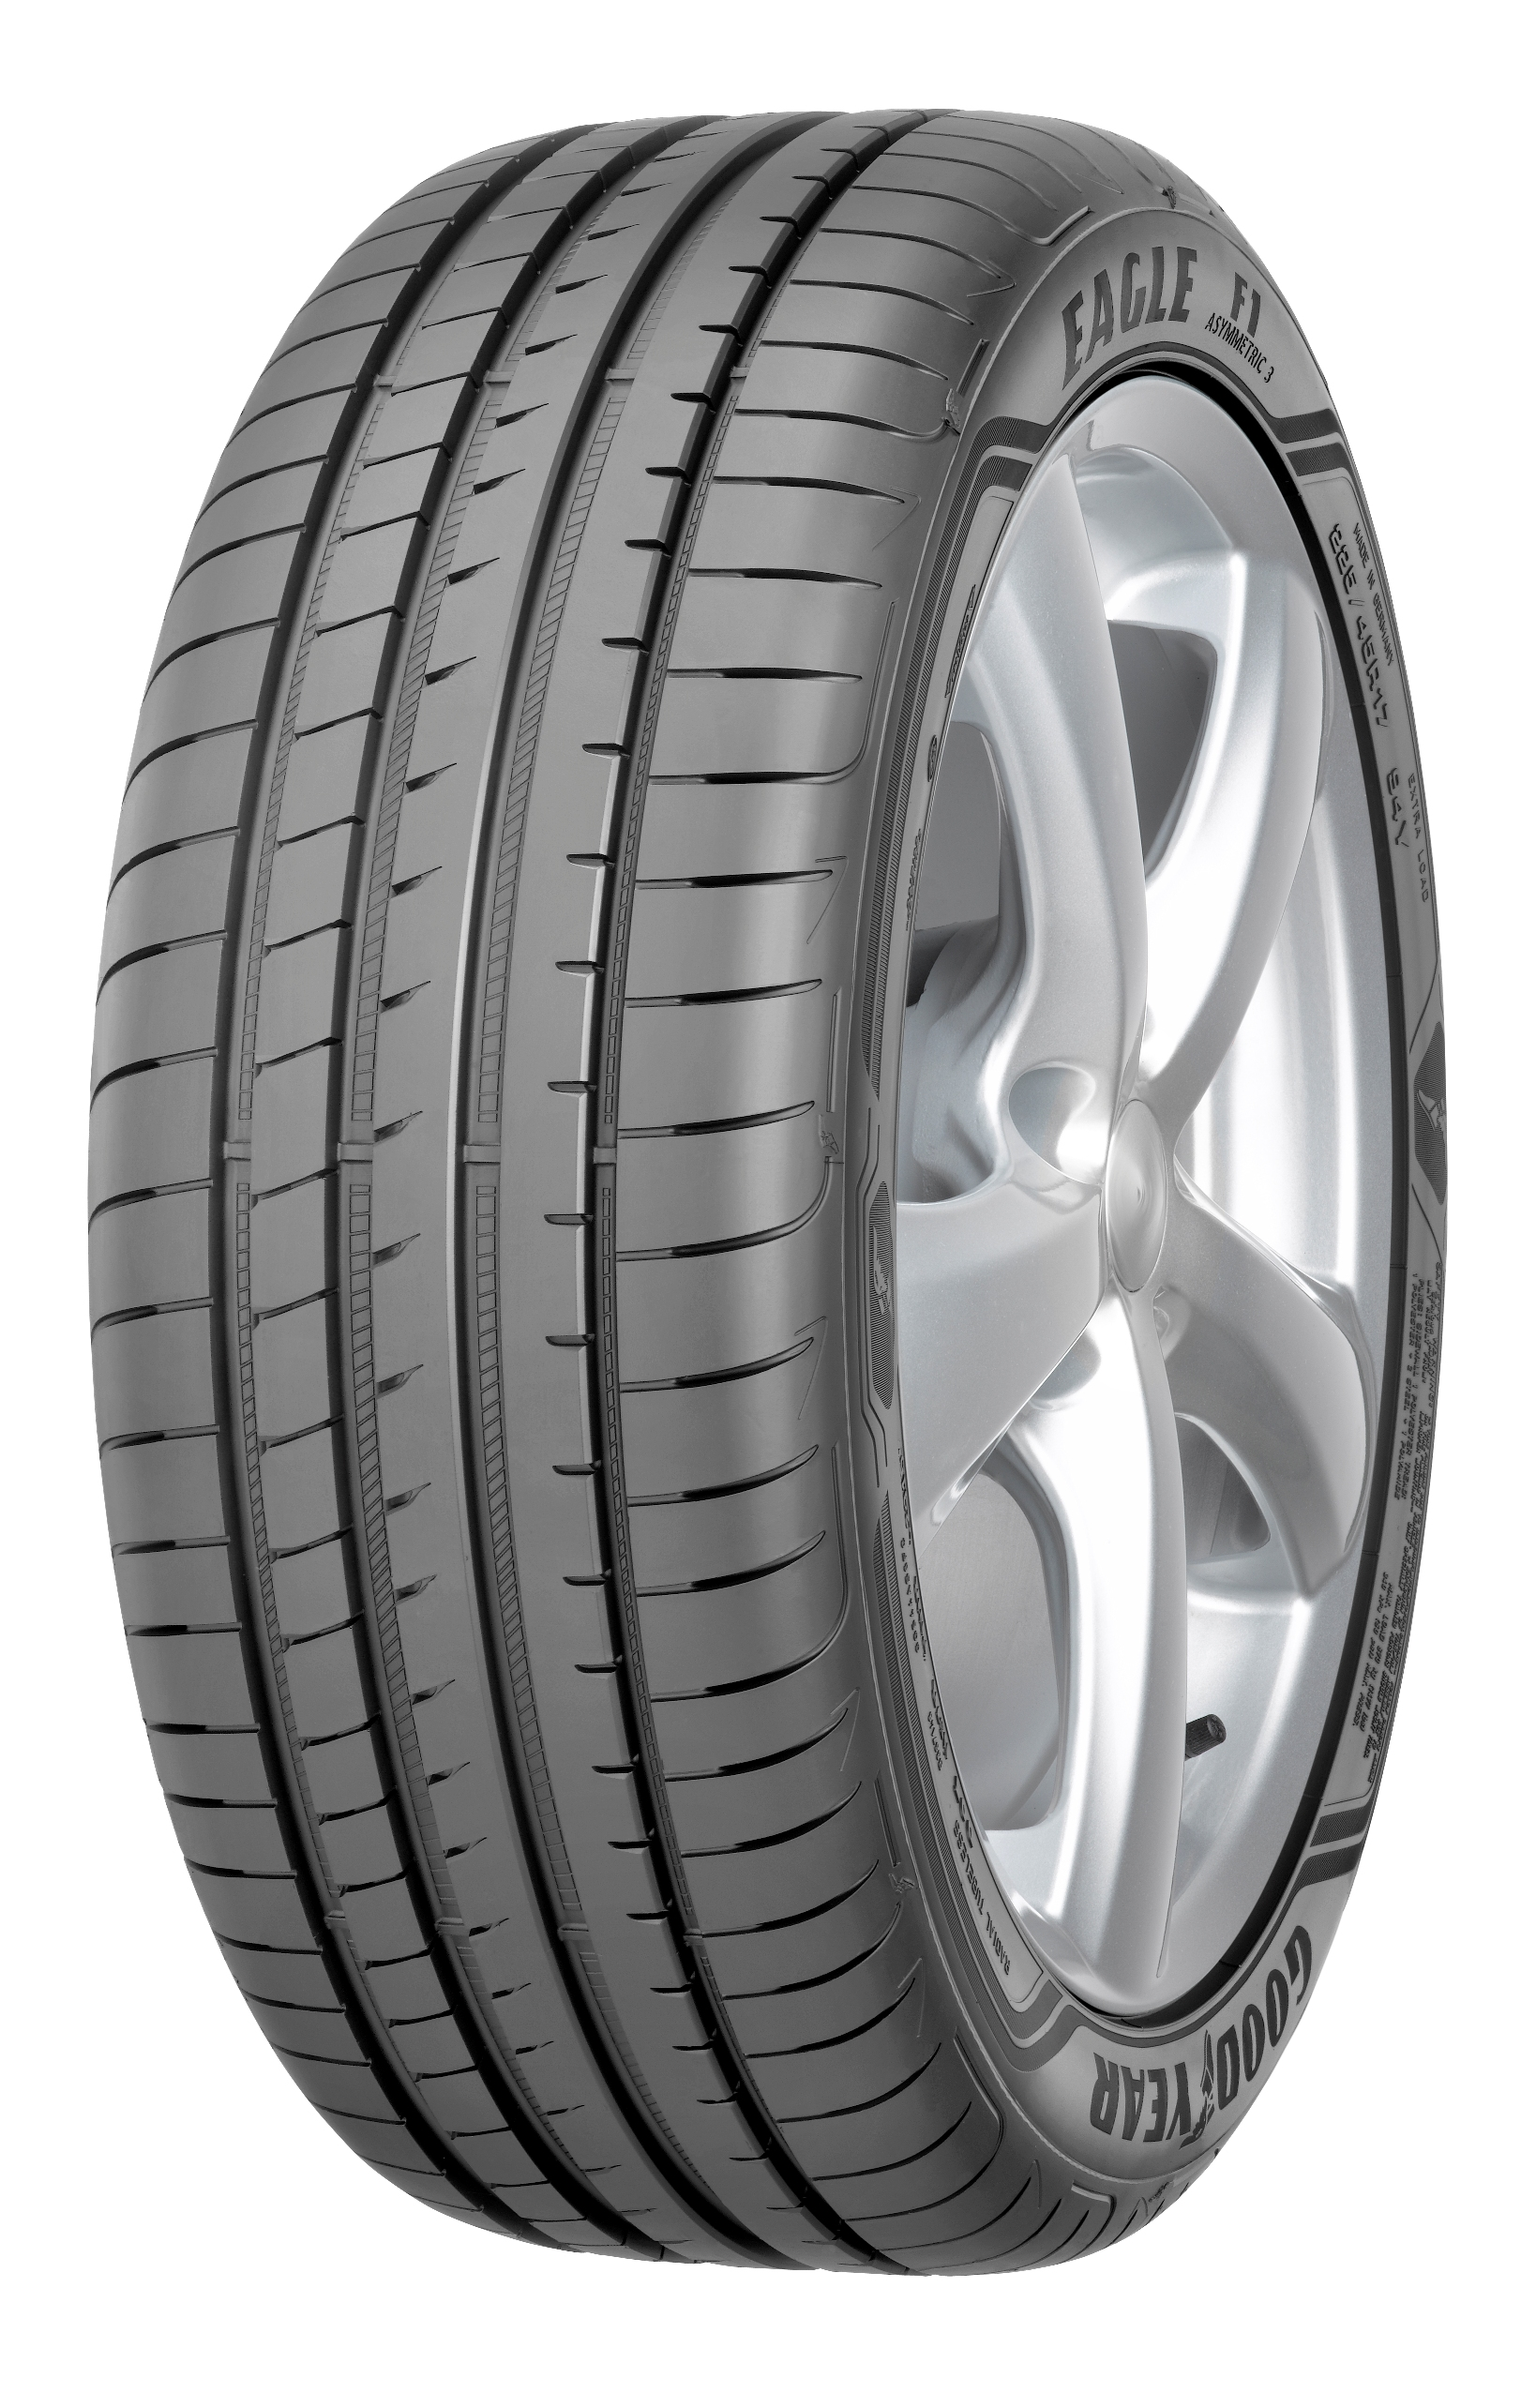 Gomme Nuove Goodyear 225/55 R17 97Y EAGLE F1 ASY 3 MOE * Runflat pneumatici nuovi Estivo